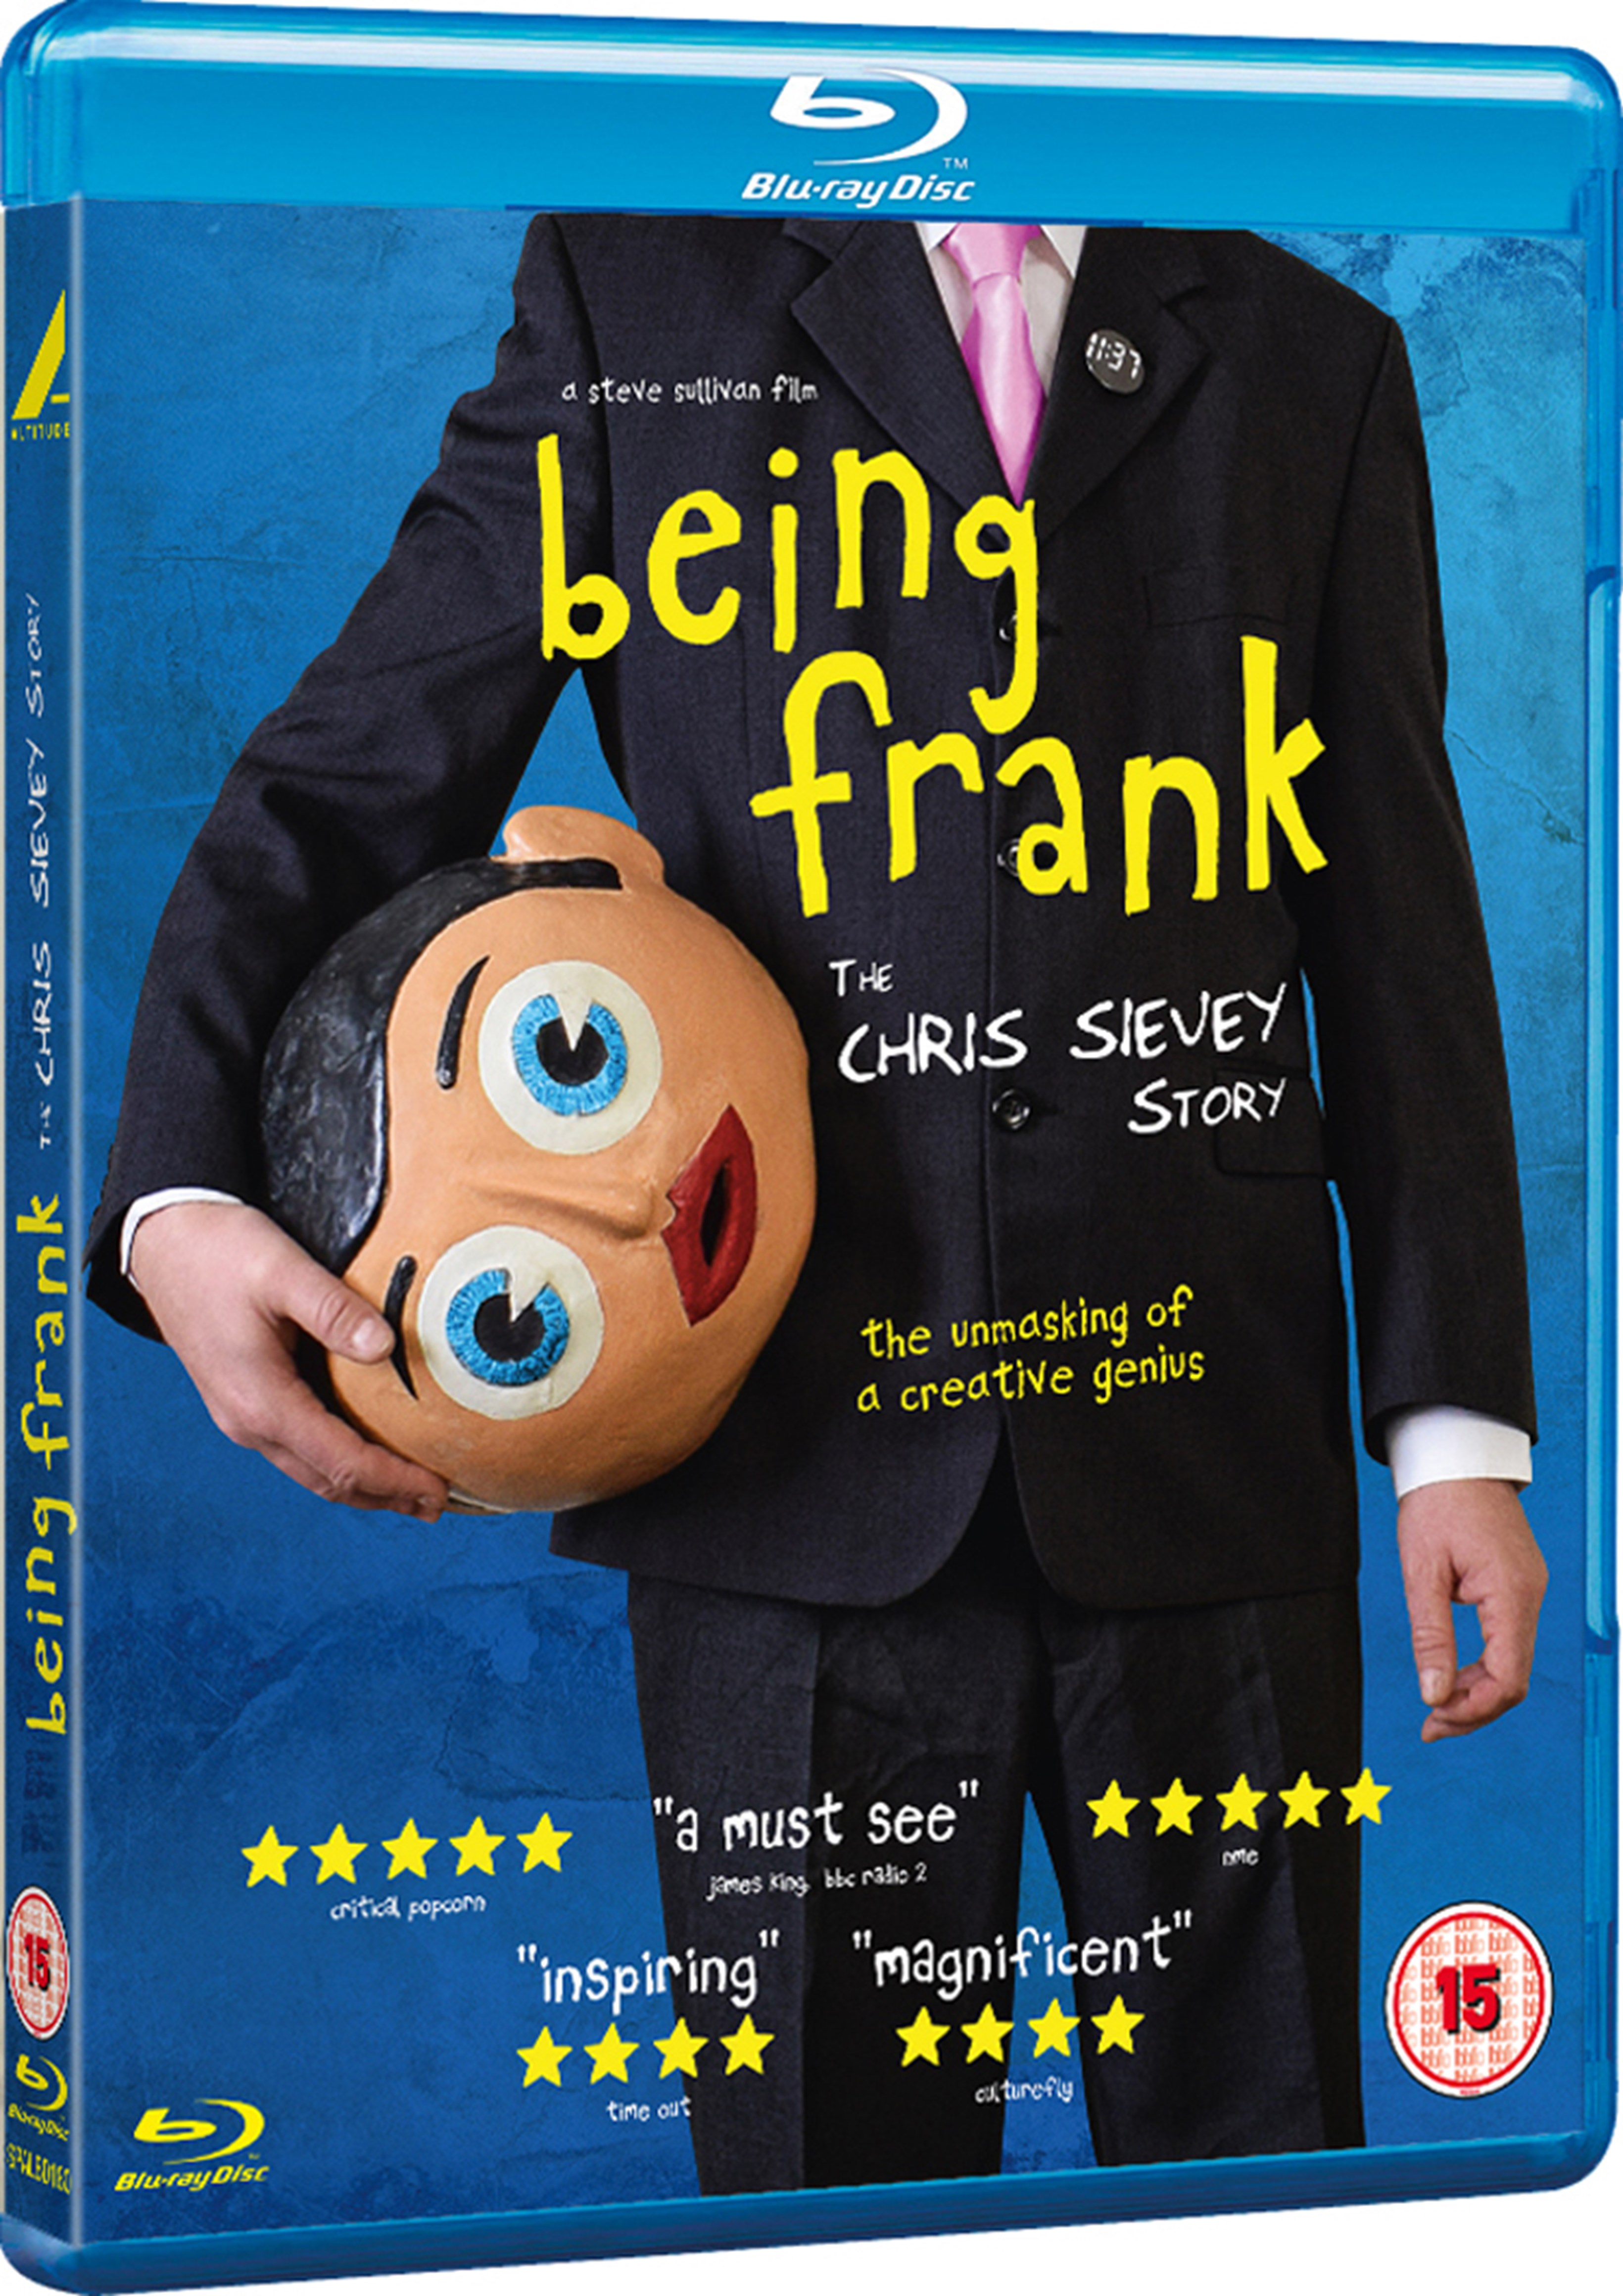 Being Frank - The Chris Sievey Story - 2